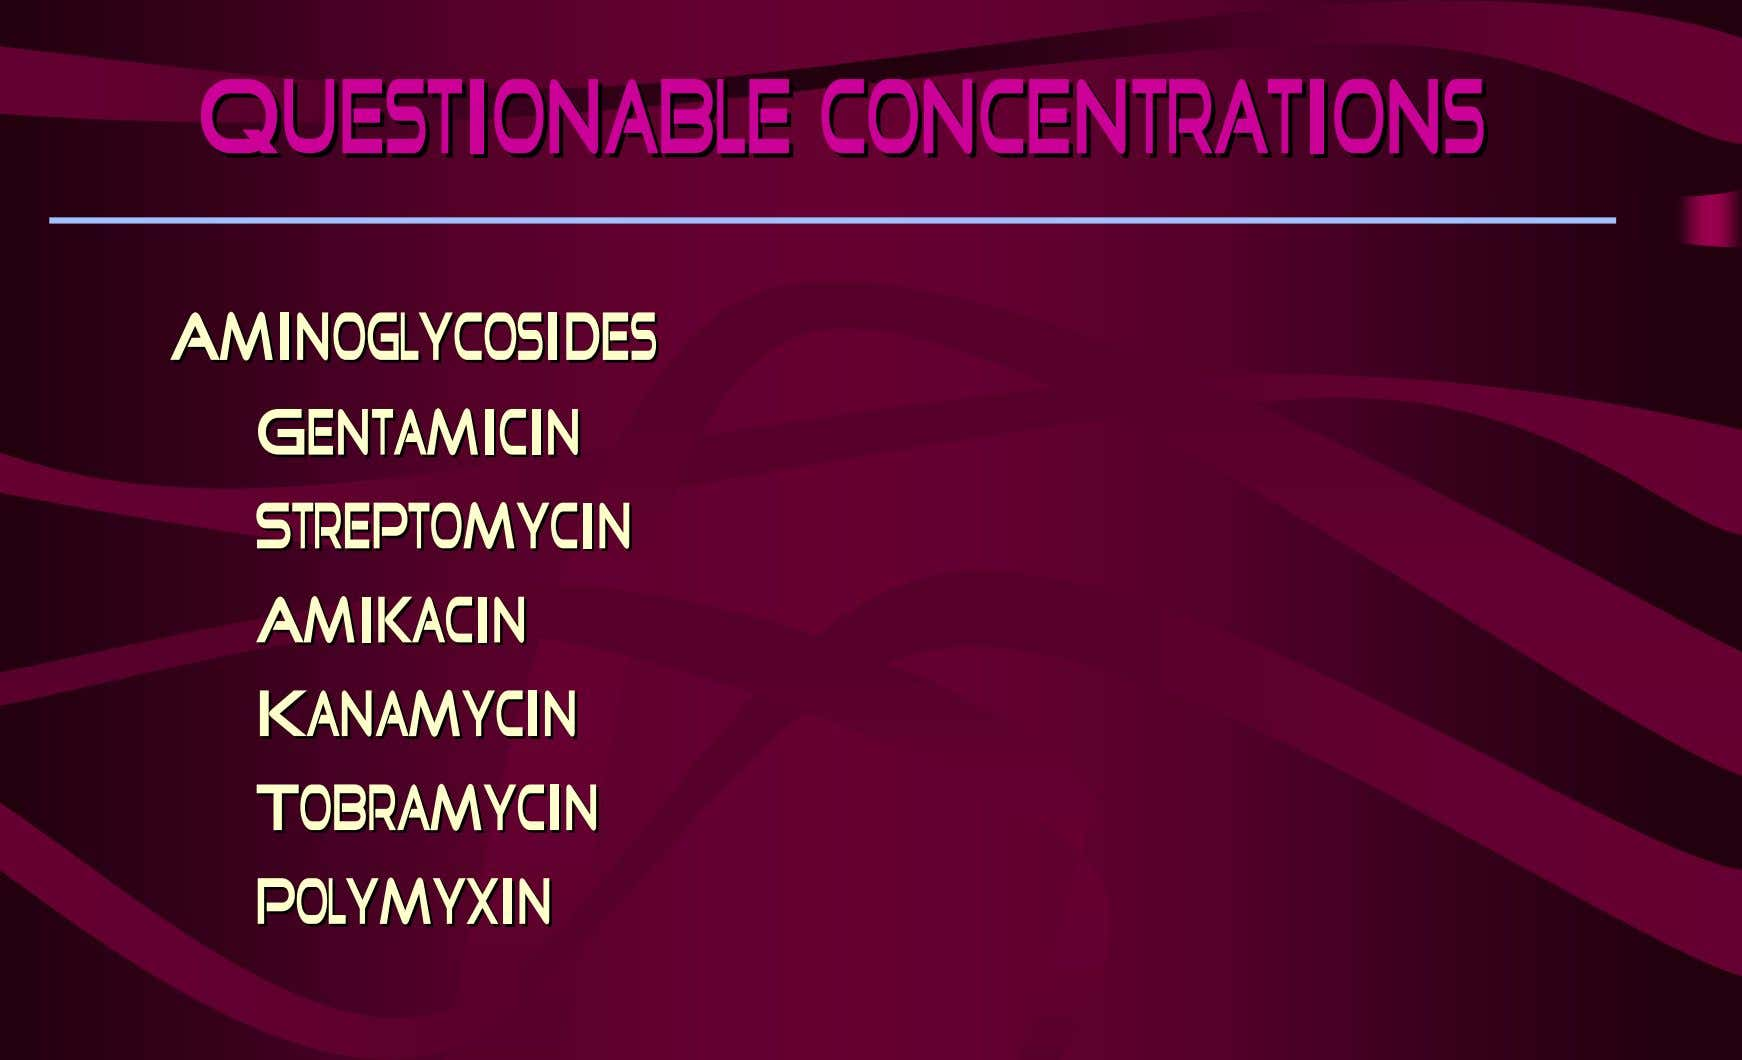 Questionable Questionable concentrations concentrations AminoglycosidesAminoglycosides GentamicinGentamicin